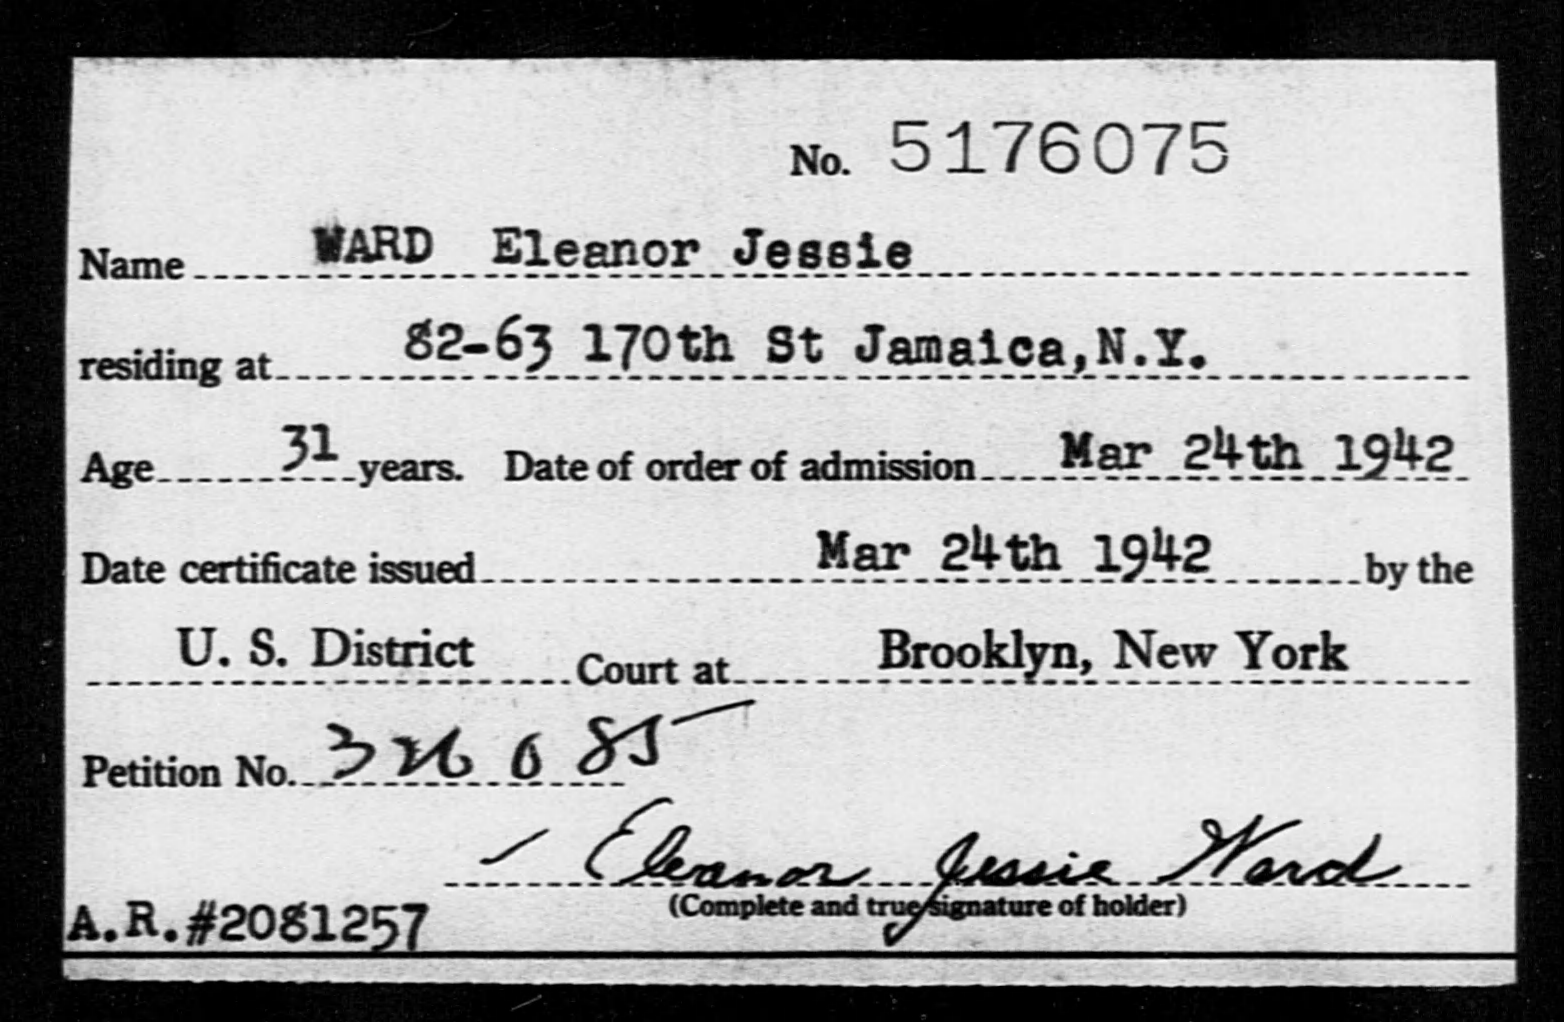 WARD Eleanor Jessie - Born: [BLANK], Naturalized: 1942